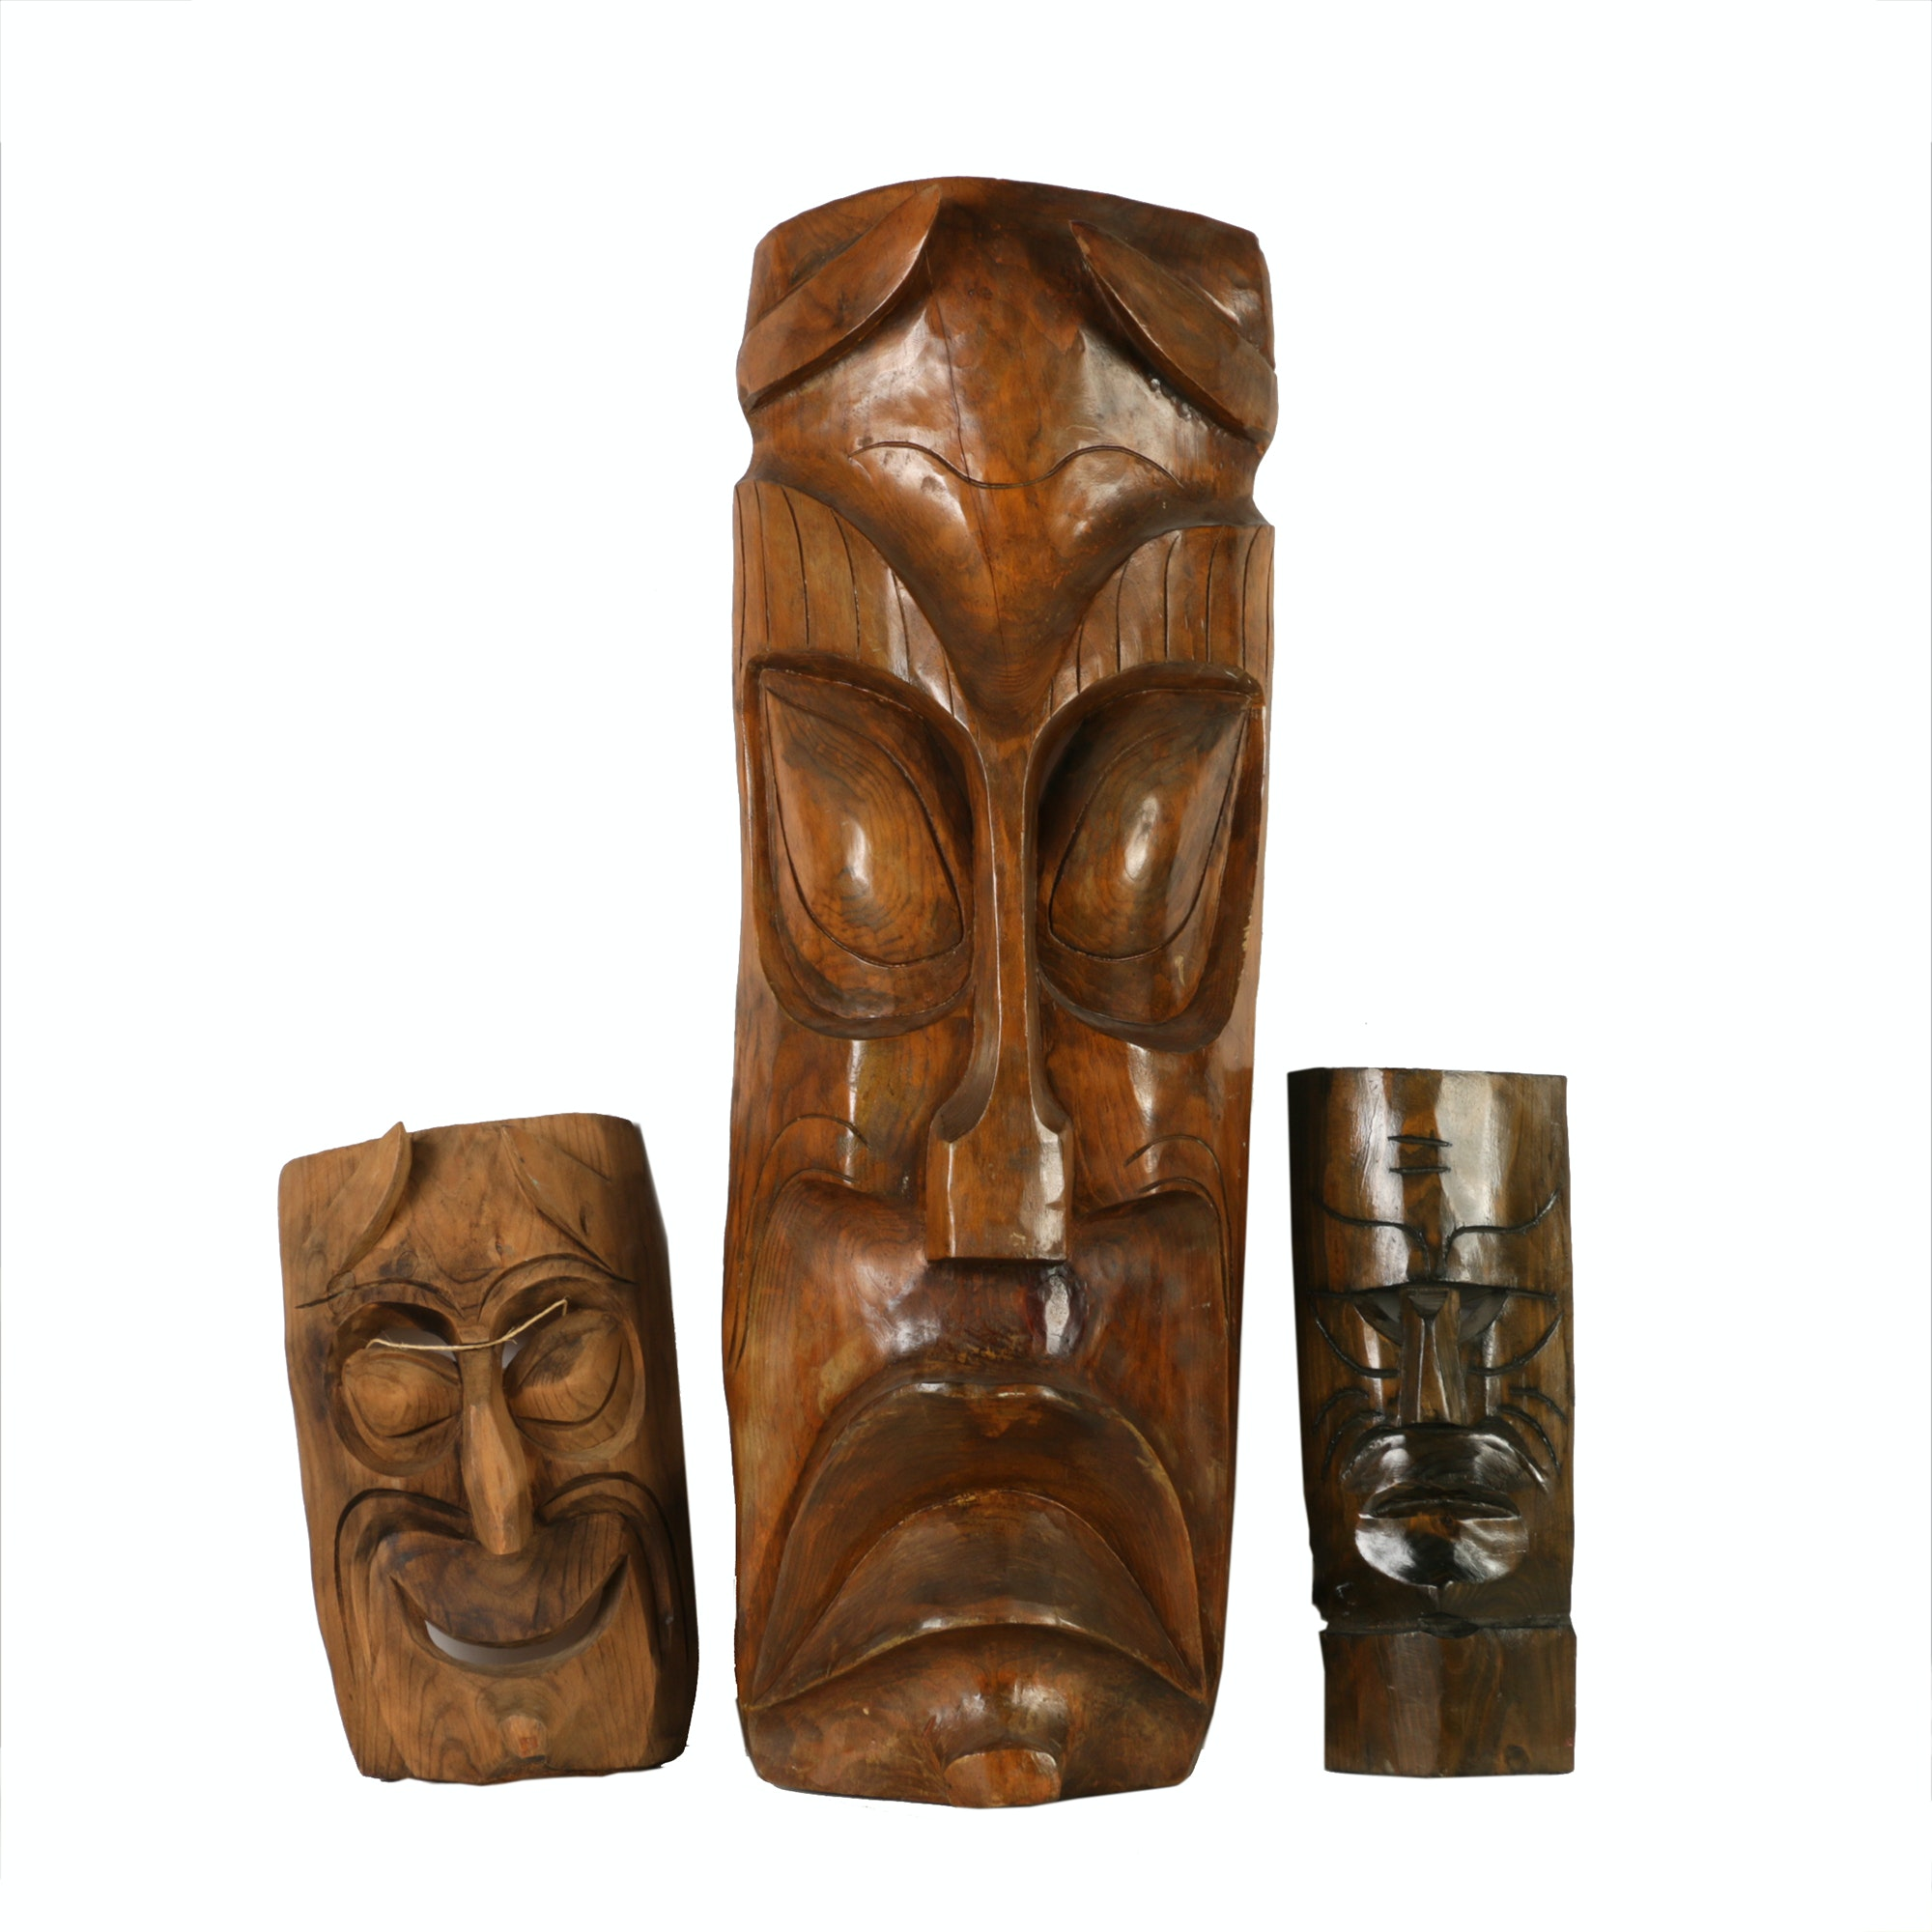 Japanese and Polynesian Style Wooden Masks